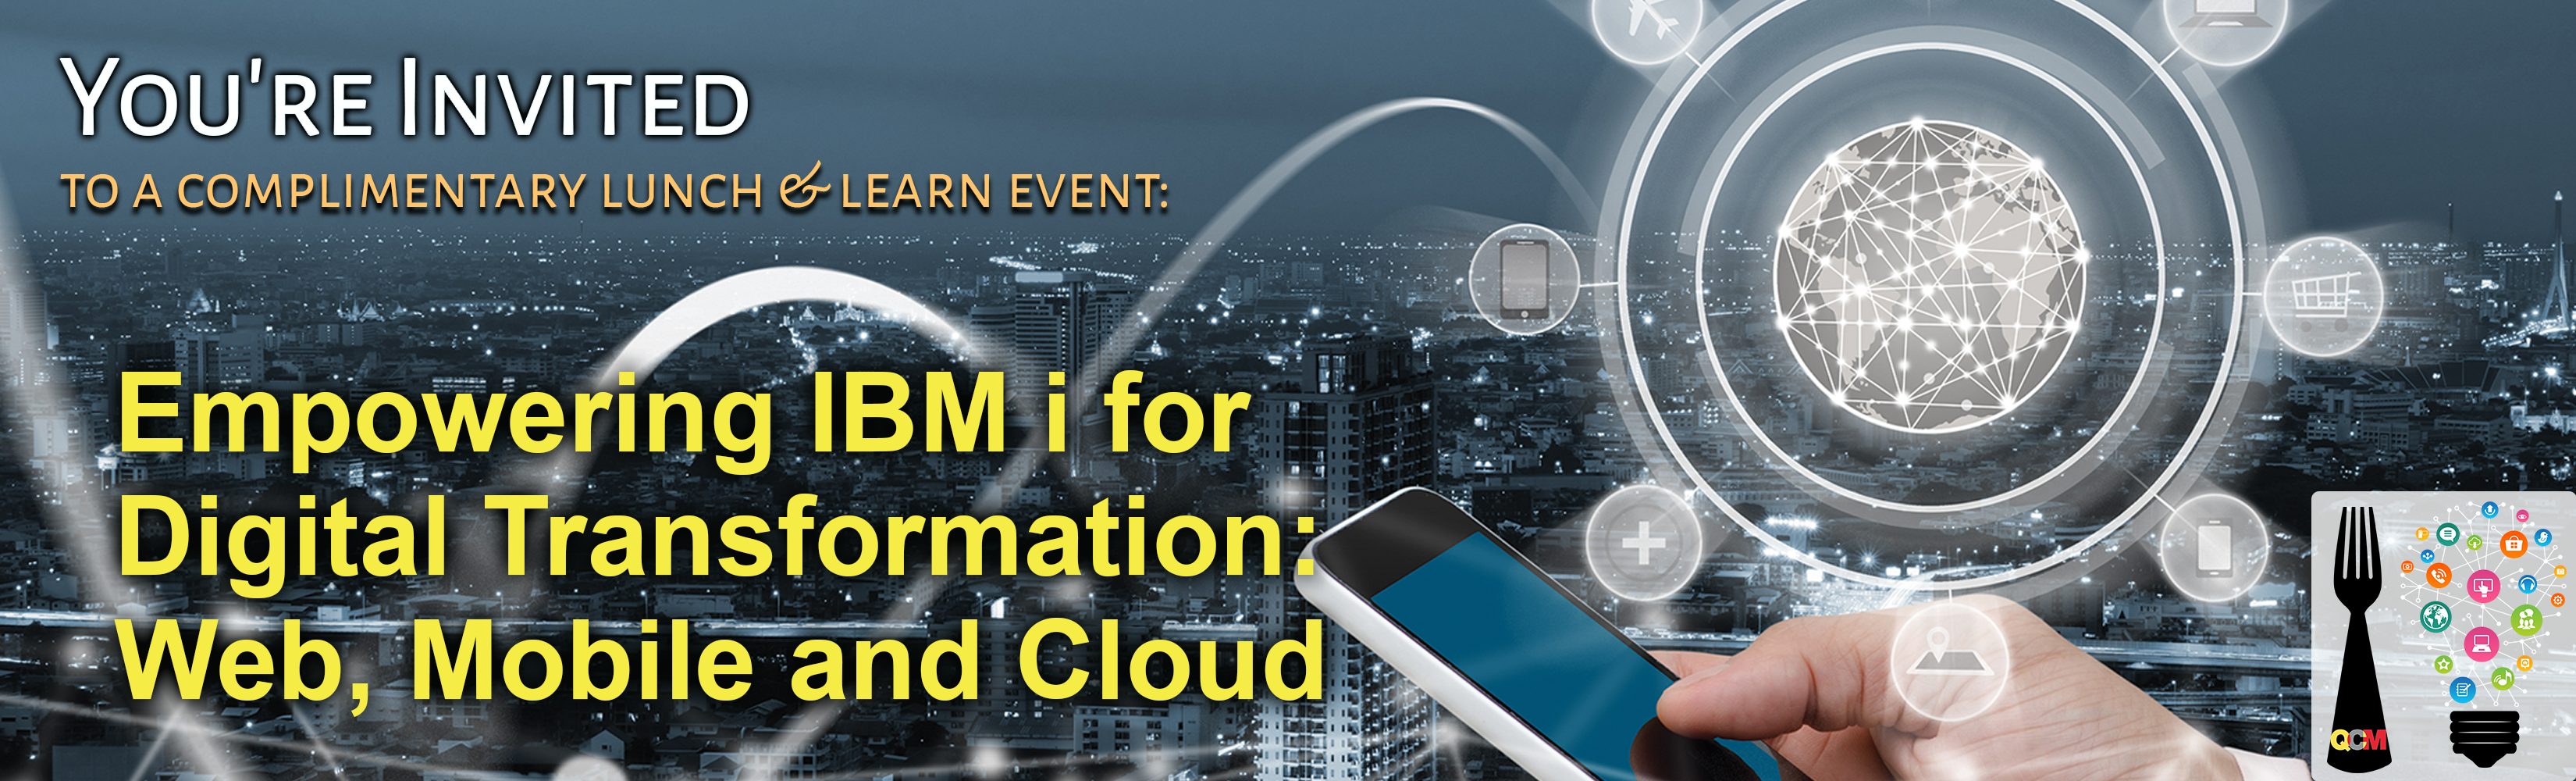 Lunch and Learn_Rocket-Focal-QCM-IBM